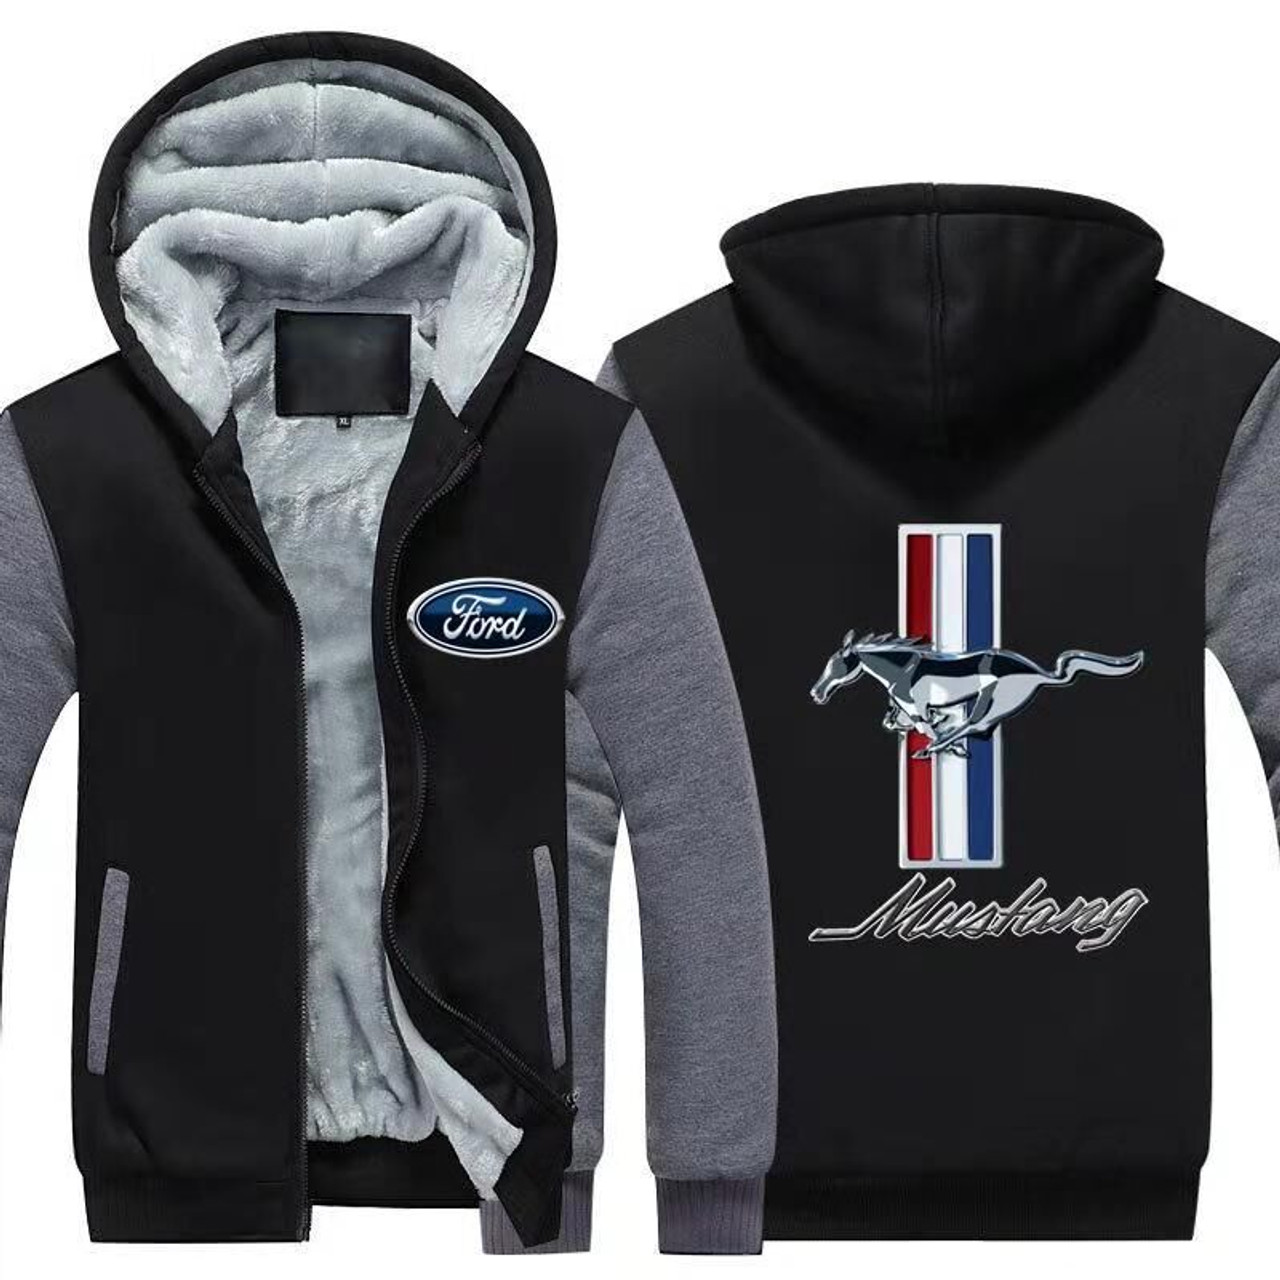 **(NEW-OFFICIALLY-LICENSED-FORD-MUSTANG,NEW-TWO-TONE-STYLE/TRENDY-MIDNIGHT-BLACK & GREY,WARM-FLEECE-LINED-JACKETS/3-D-CUSTOM-CLASSIC-BLUE-FORD-LOGO & MUSTANG,DETAILED-GRAPHIC-PRINTED-DOUBLE-SIDED-FORD-LOGOS/ZIP-UP-FRONT-PREMIUM-FLEECE-JACKETS)**